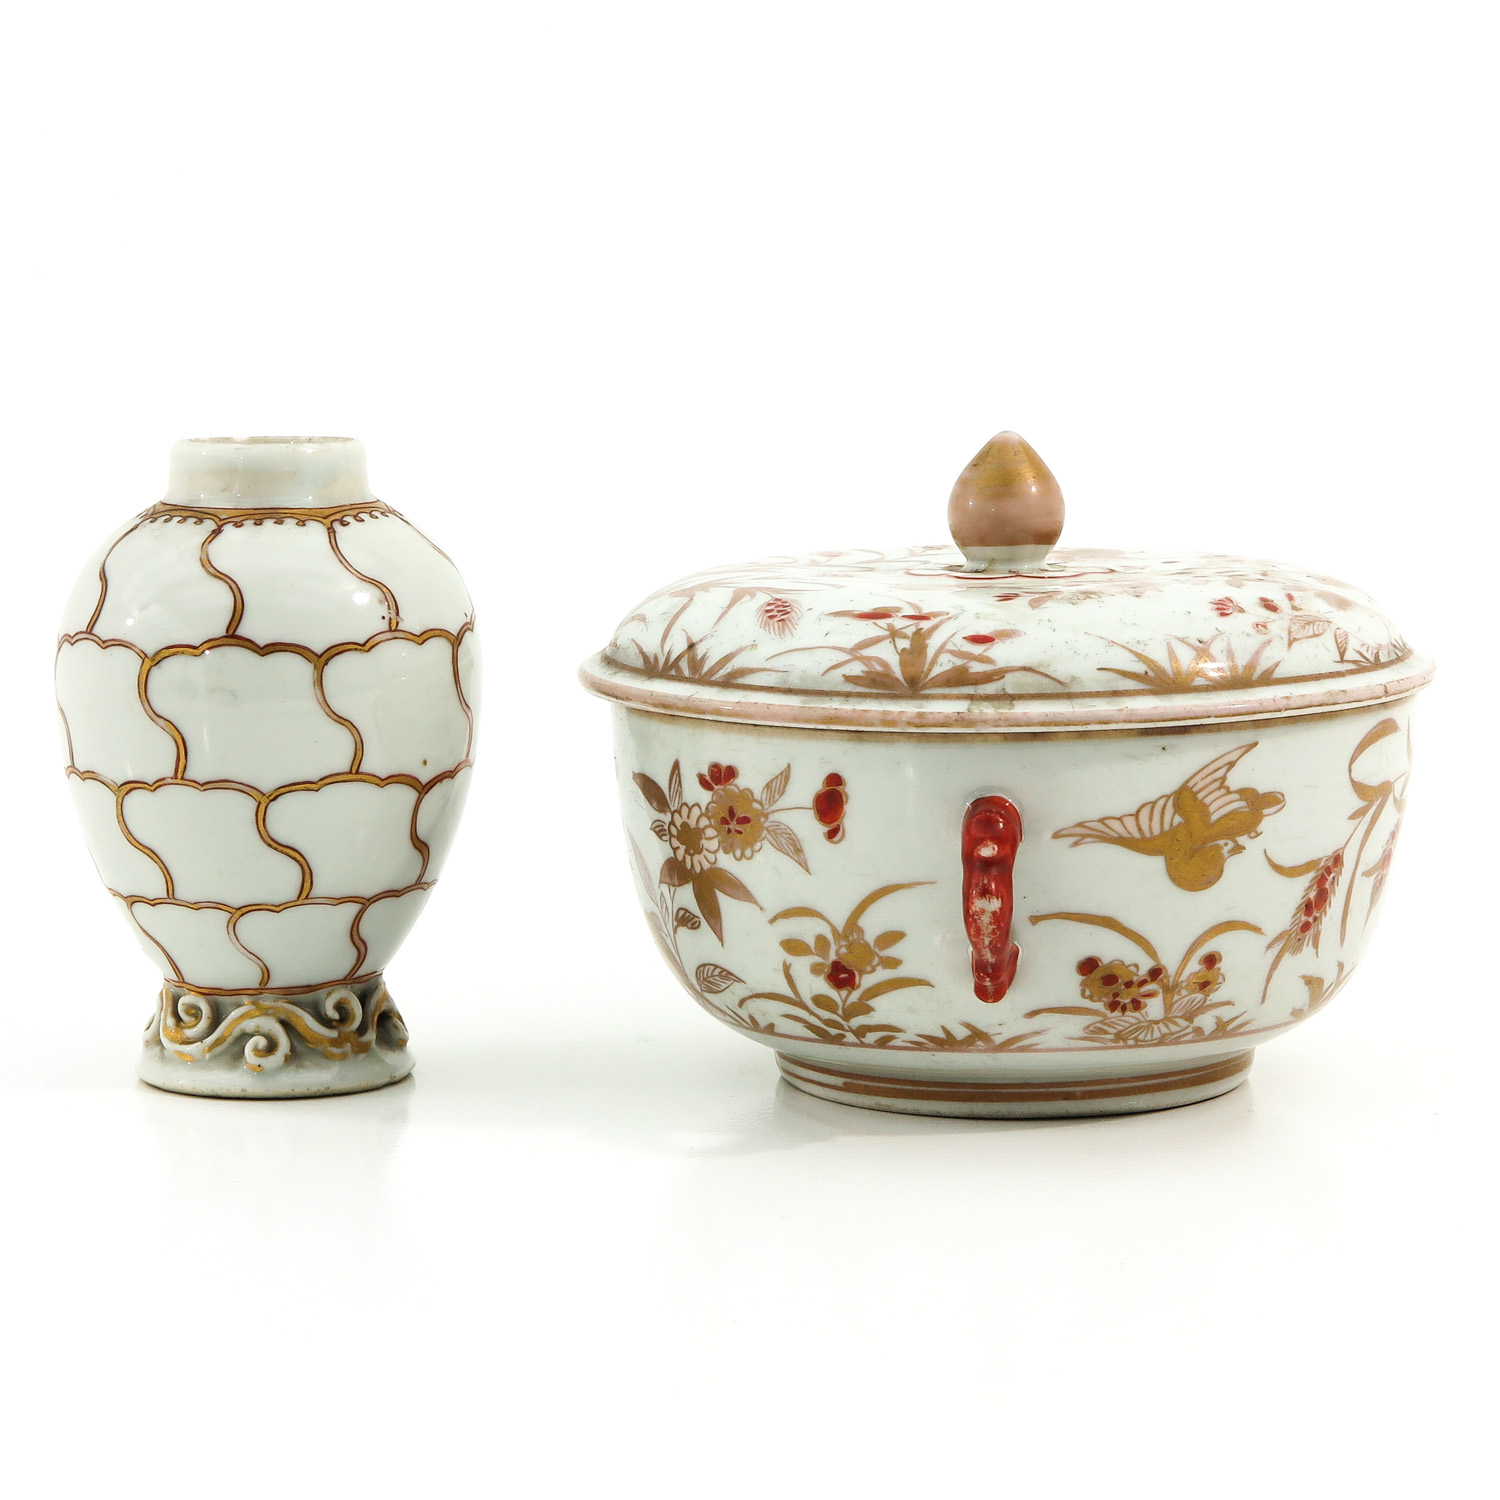 A Tea Box and Covered Dish - Image 2 of 9